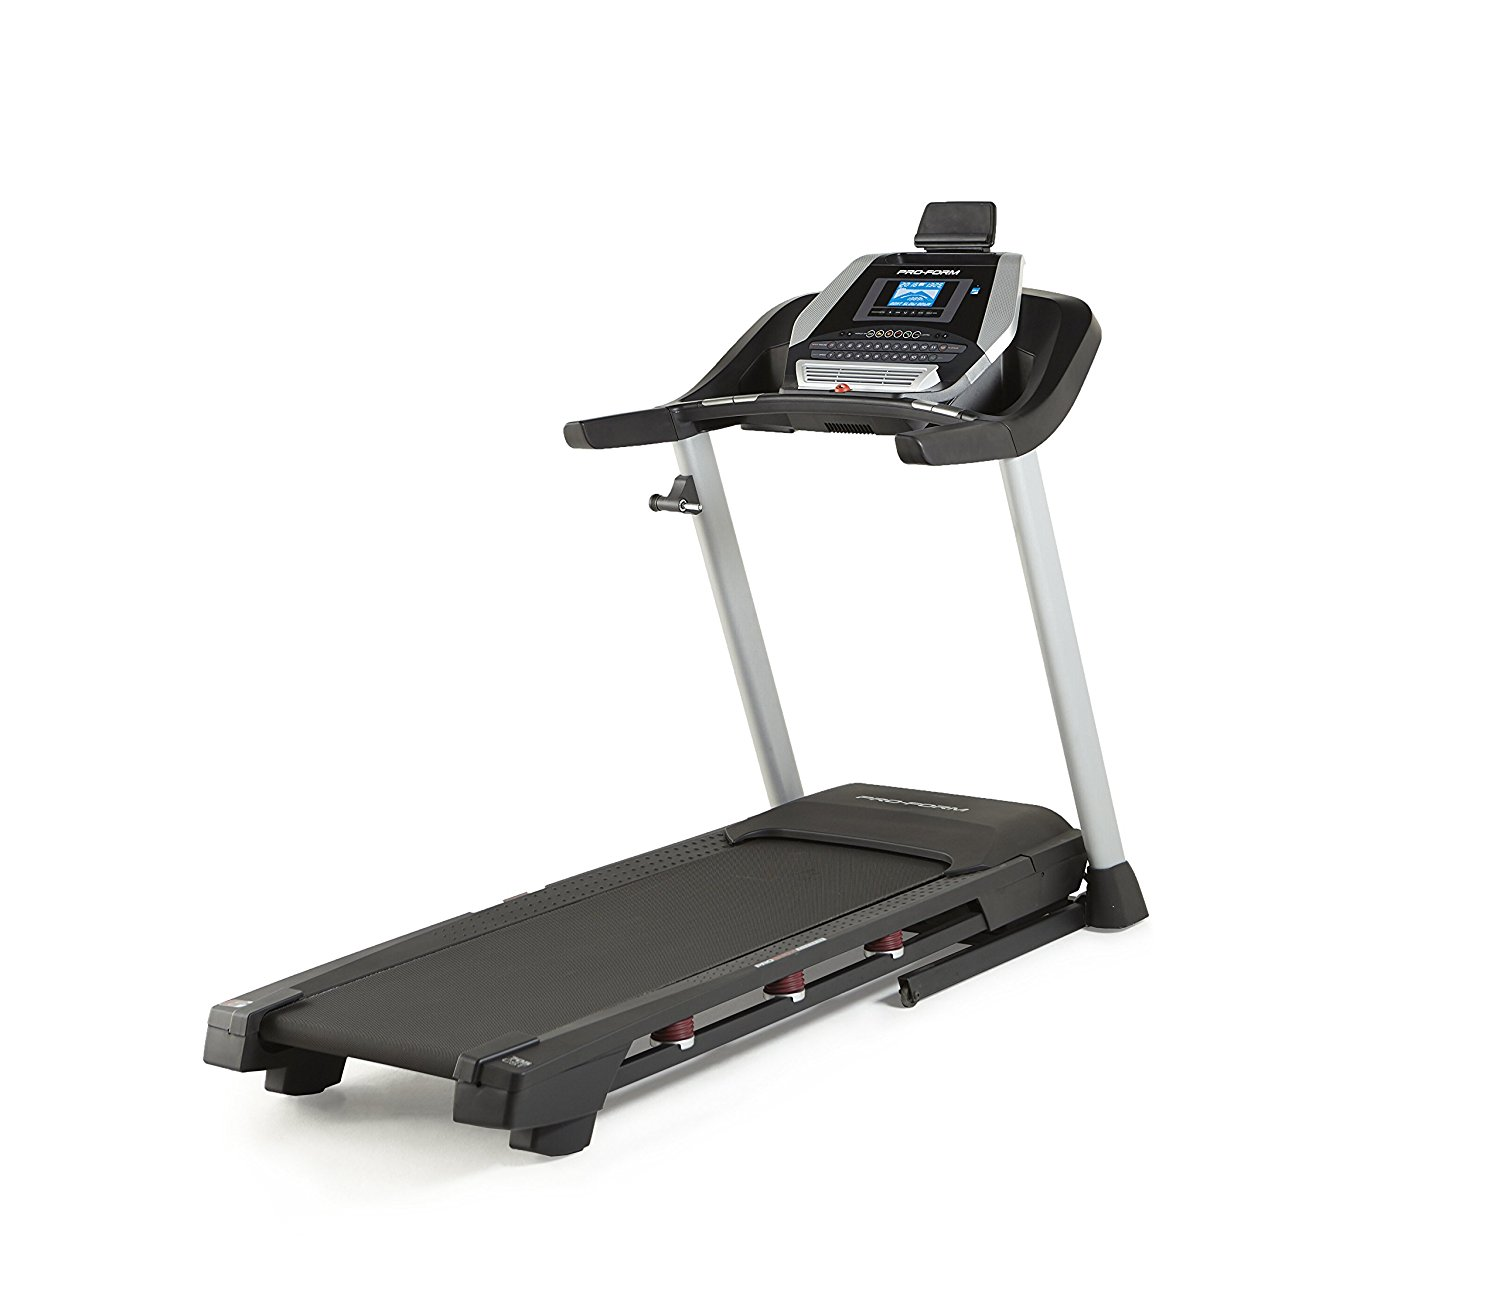 Proform 705 Marcy Treadmills for HomeUse